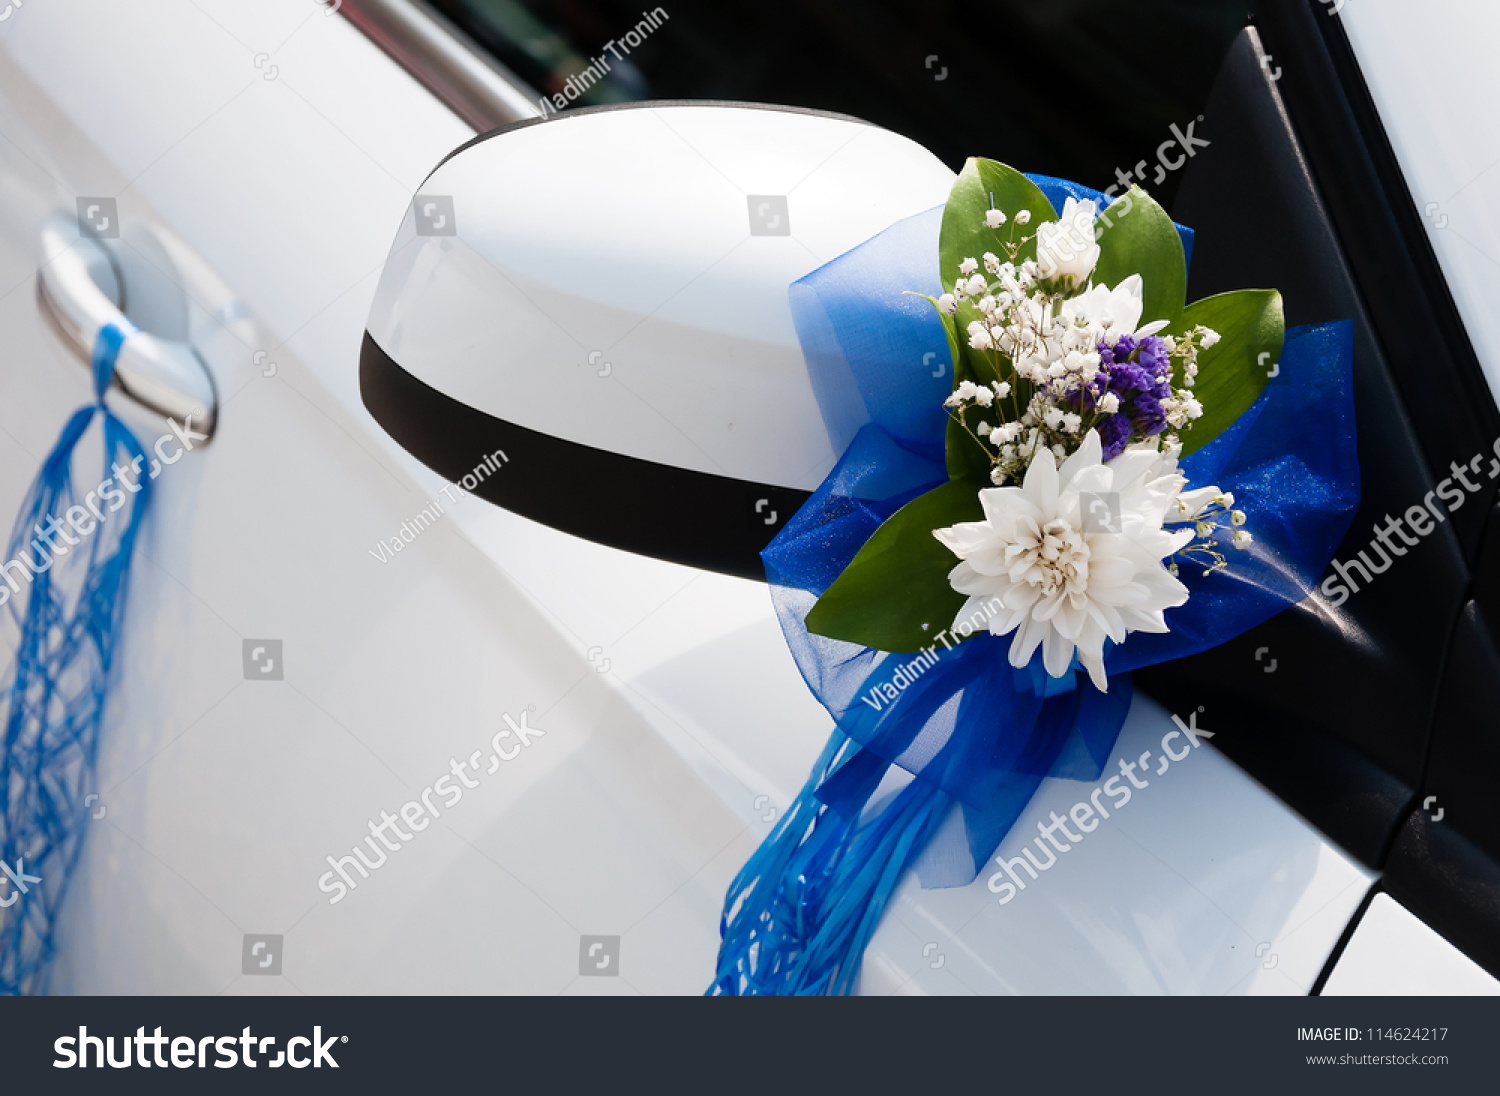 Wedding Car Decorate Wedding Car Decoration Flowers Ribbons Stock Photo 114624217